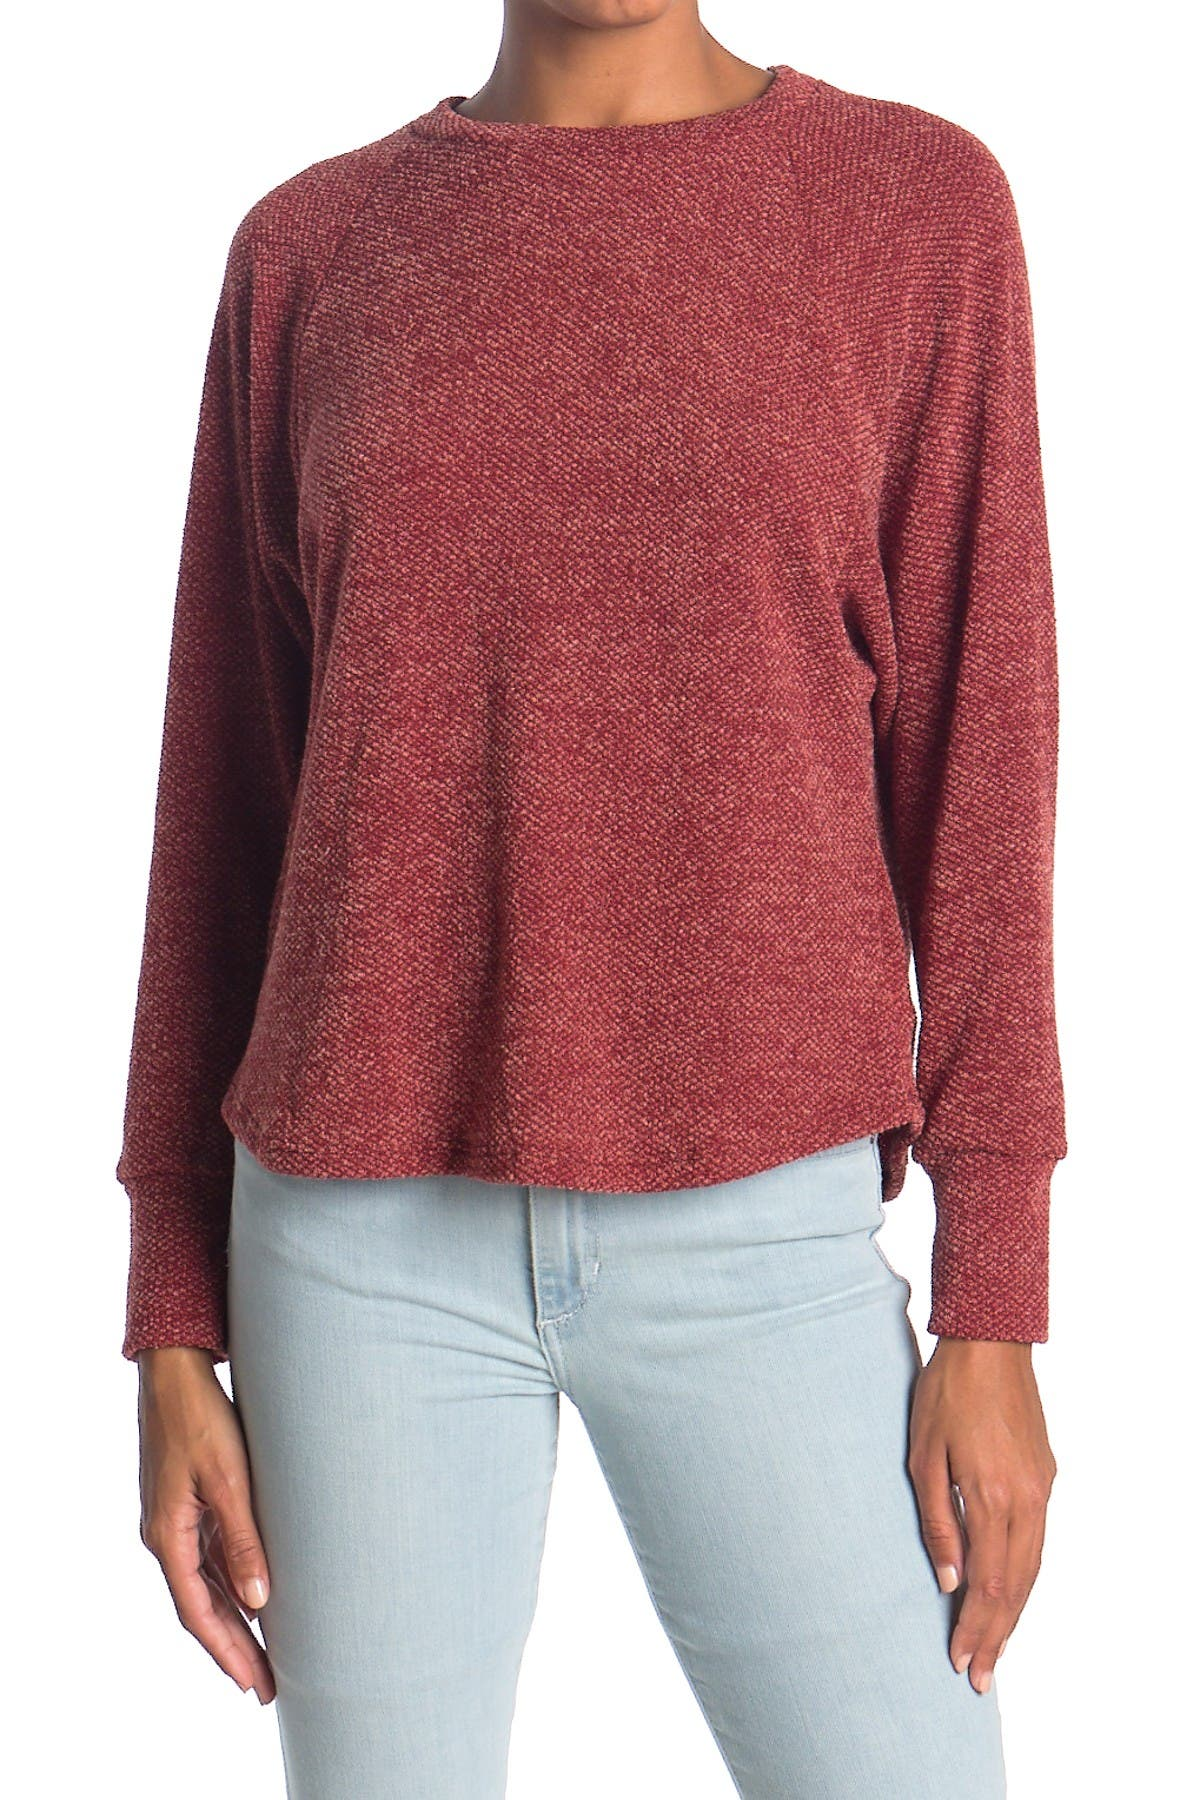 Image of Lush Round Neck Pullover Sweater